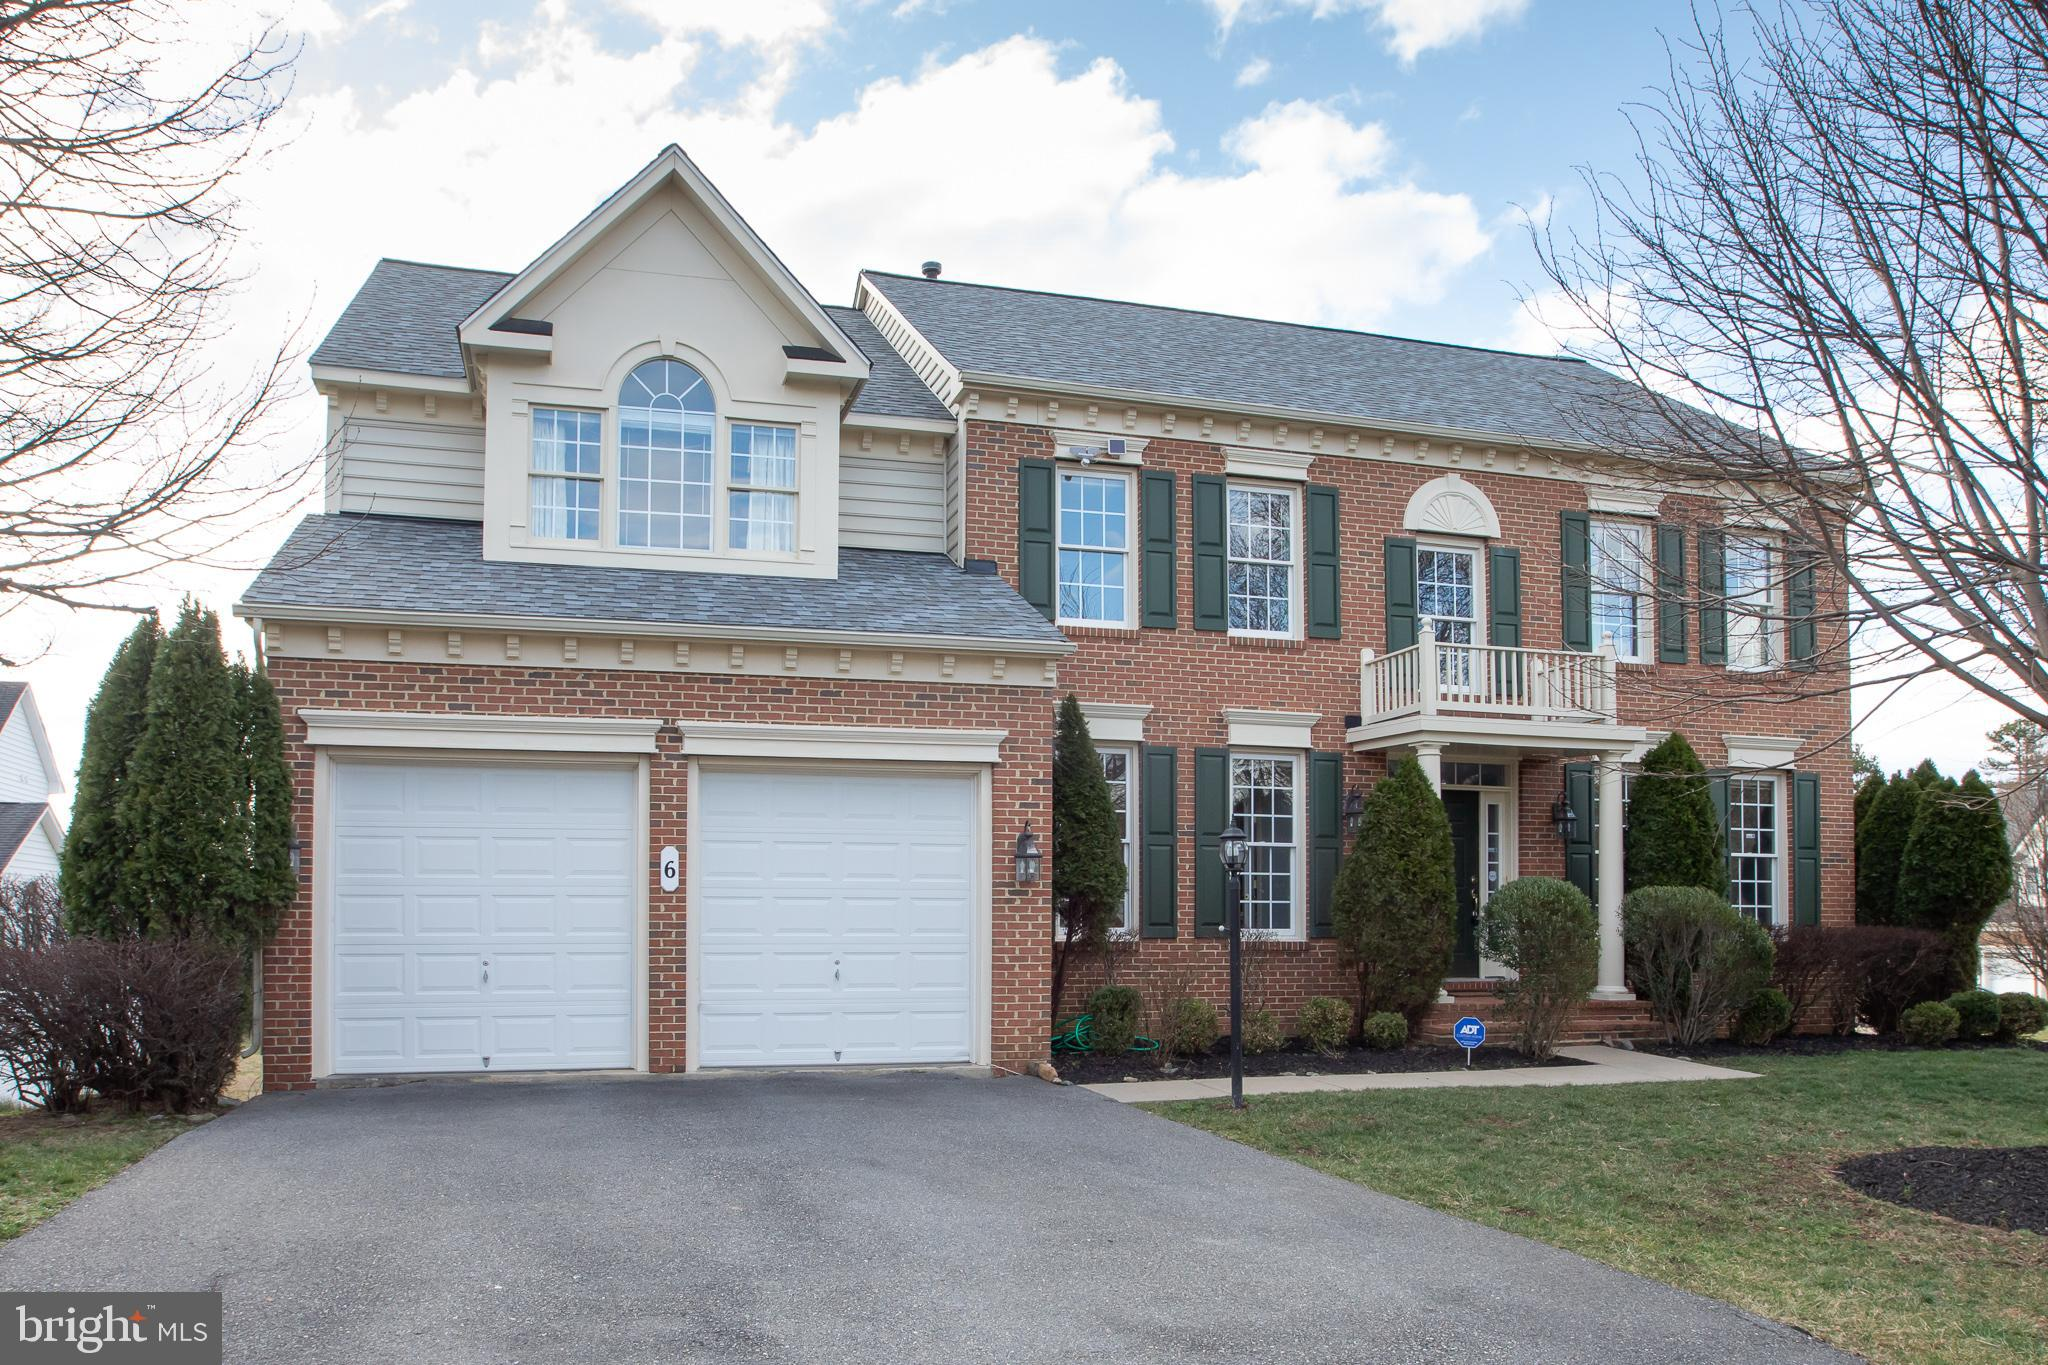 6 SWEETWOOD COURT, ROCKVILLE, MD 20850